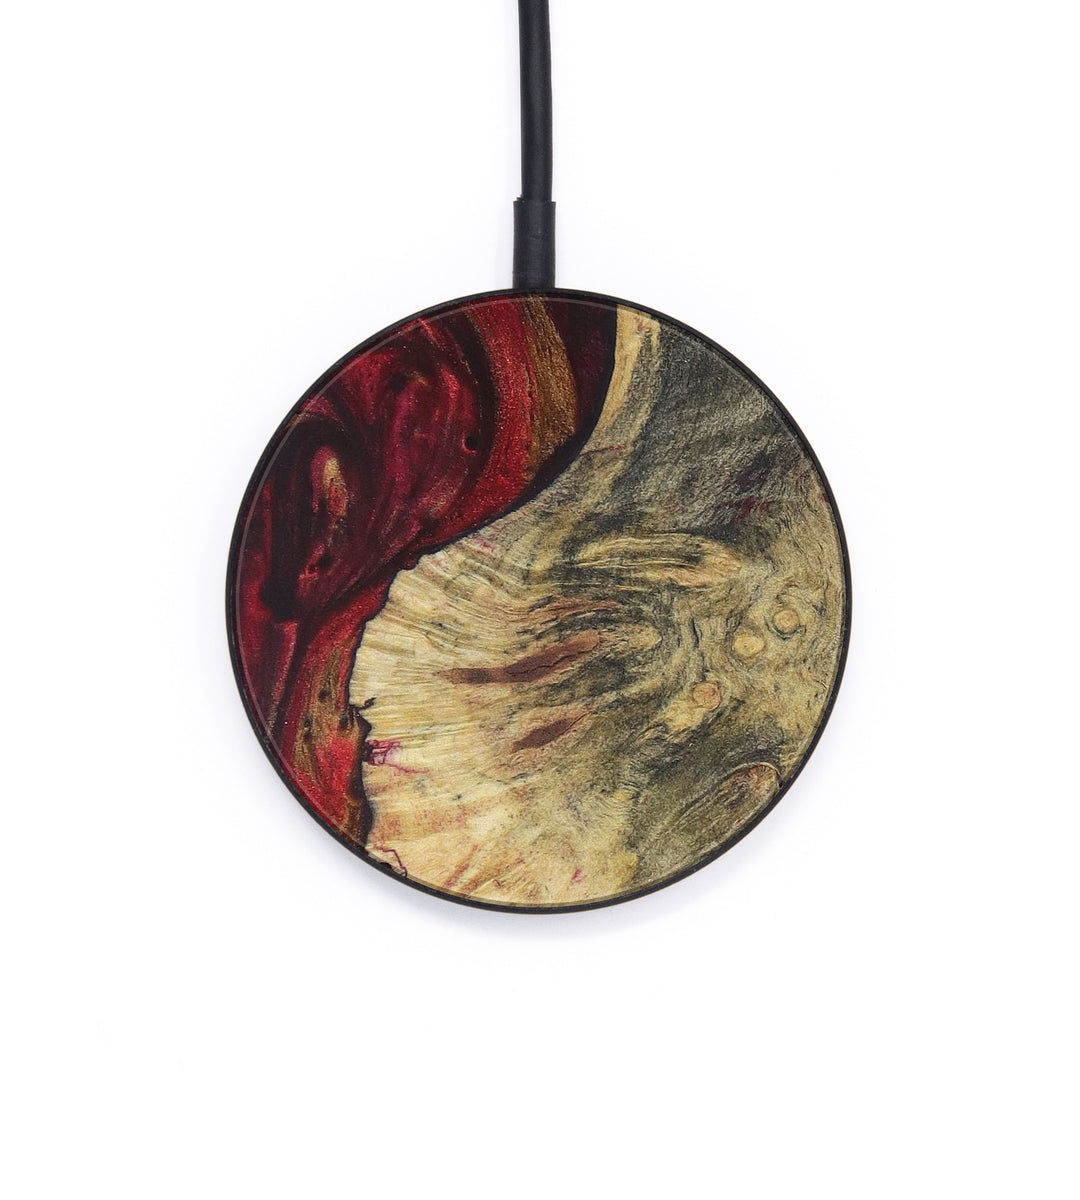 Circle Wood+Resin Wireless Charger - Dpnlab (Dark Red, 392830)